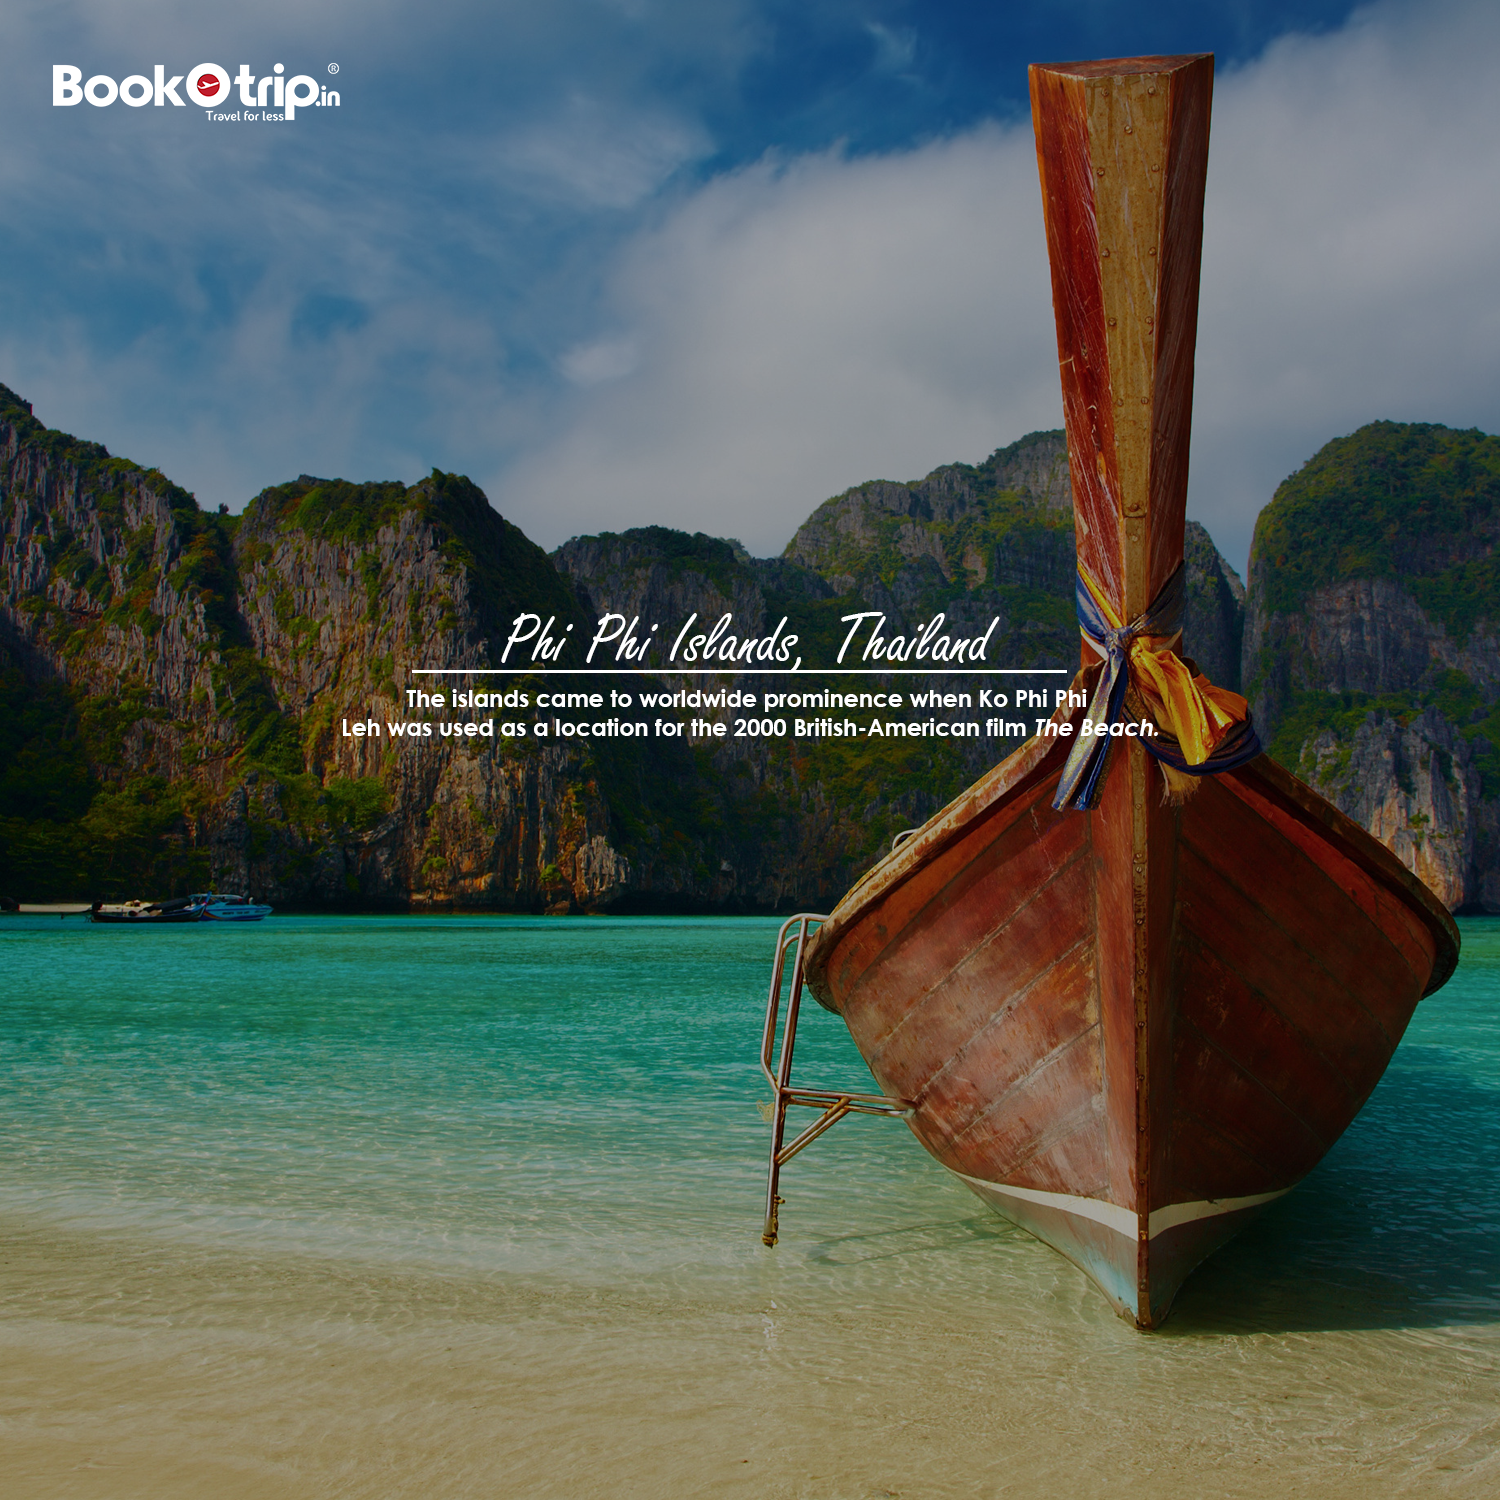 BookOtrip TravelForLess Wanderlust adventureseekers